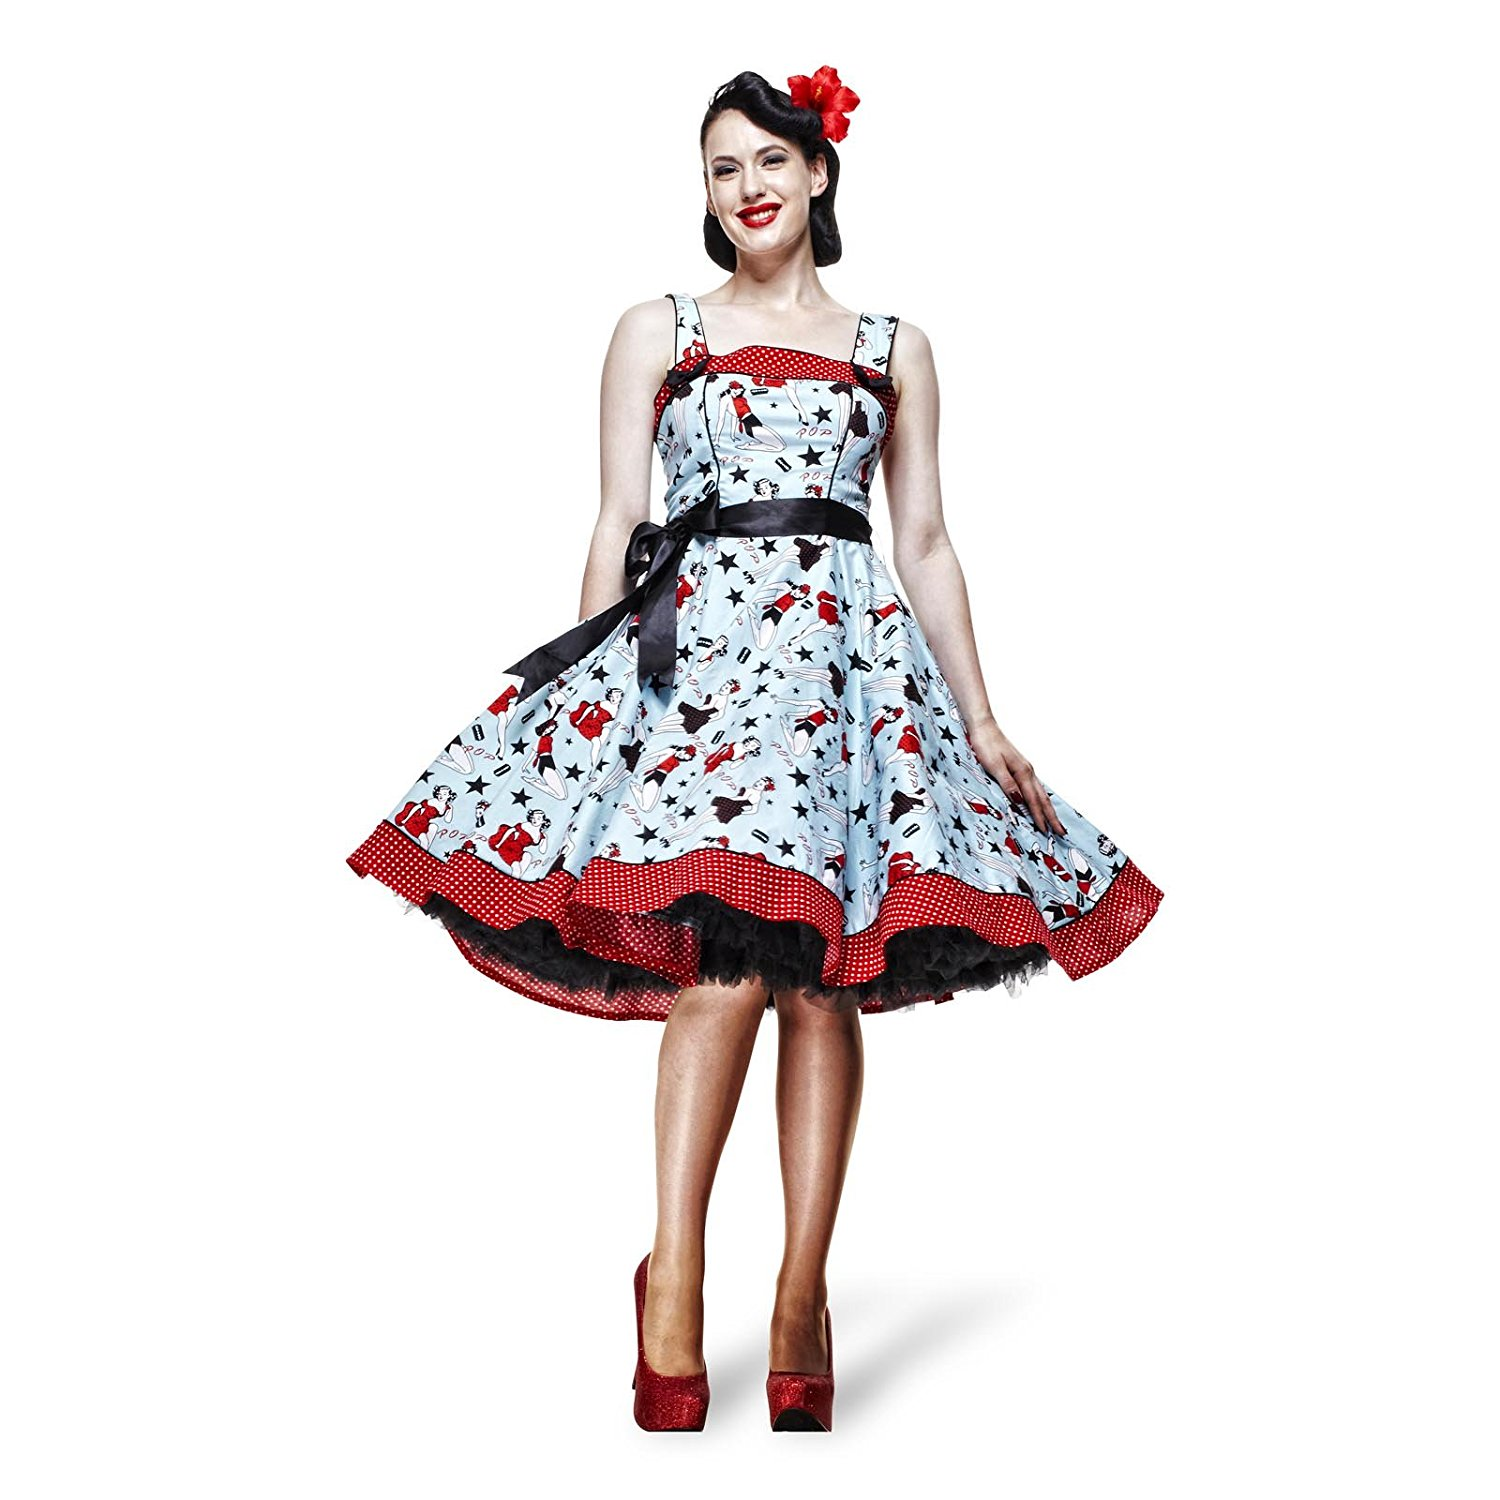 Vetement pin up ann e 50 photos de robes - Pin up annee 40 ...